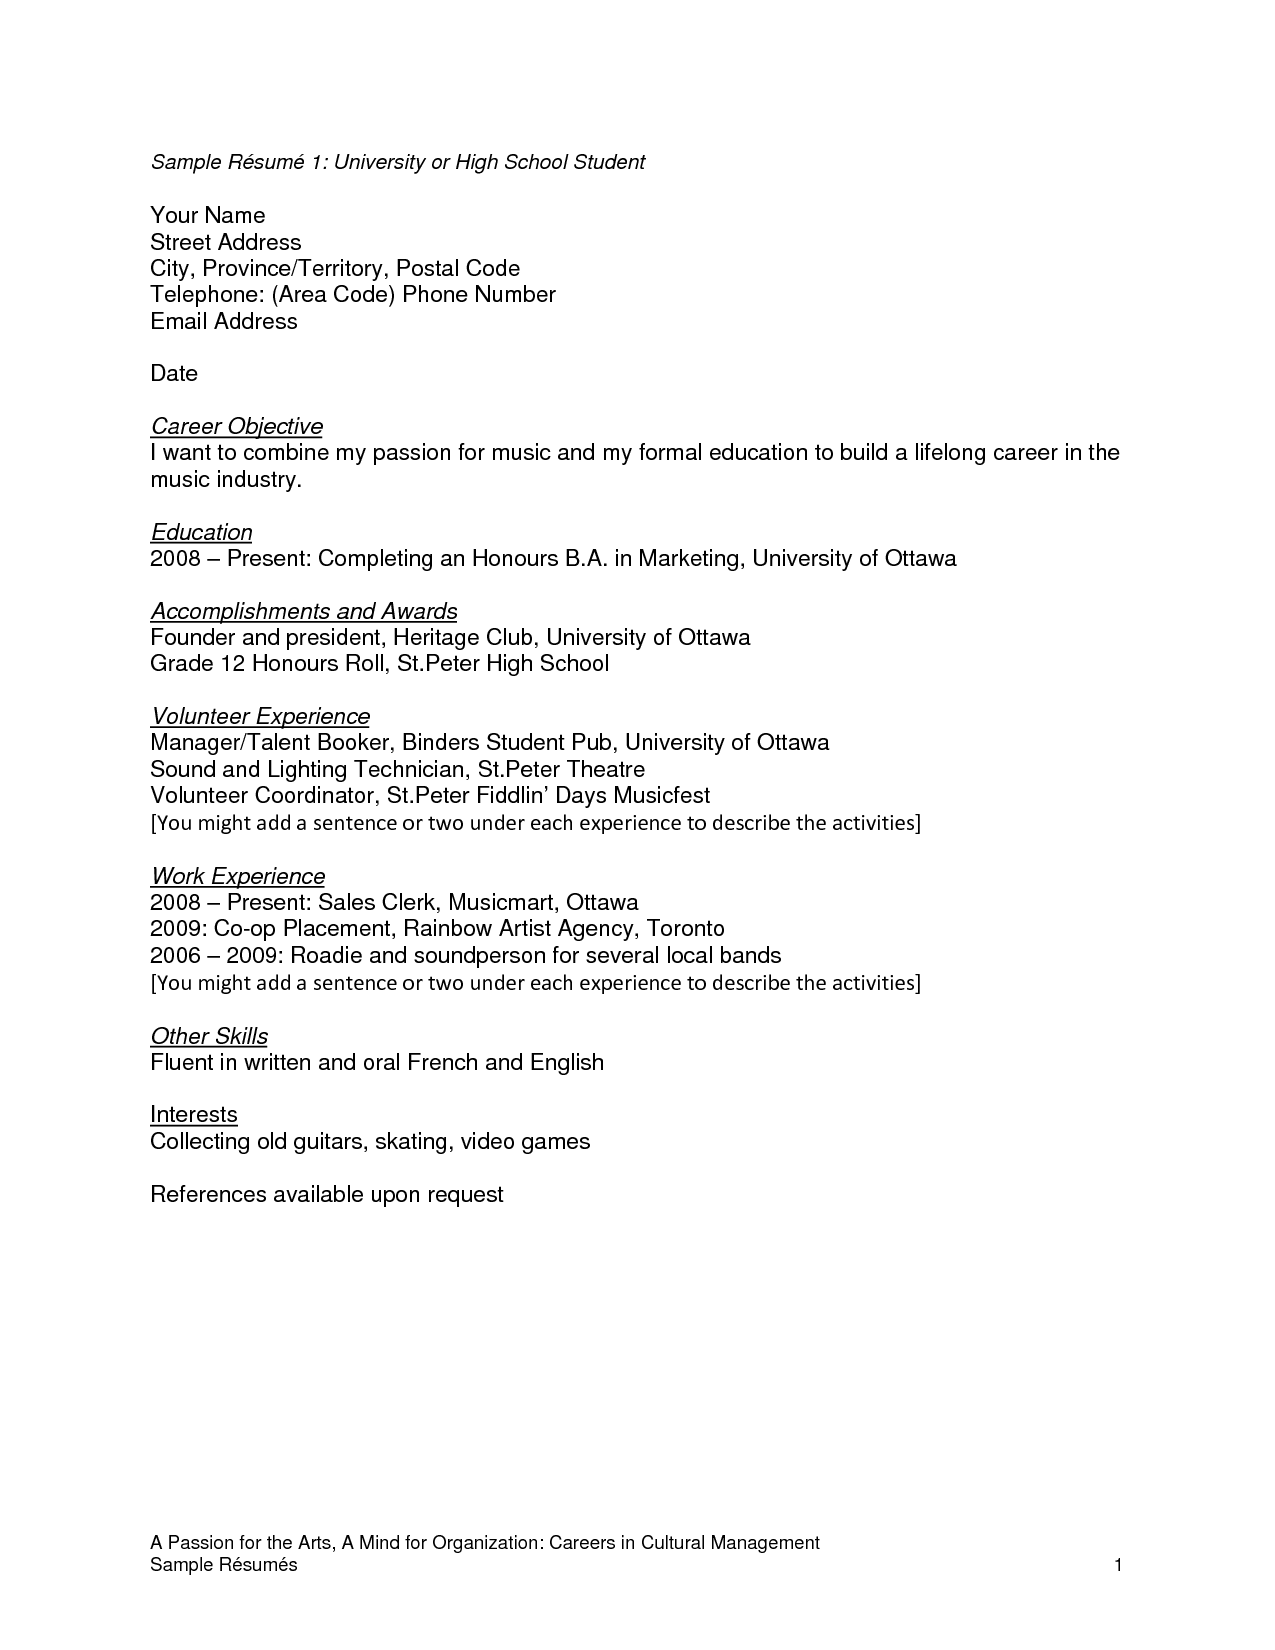 Resumes For High School Students High School Student Resume Templates  Httpwwwresumecareer